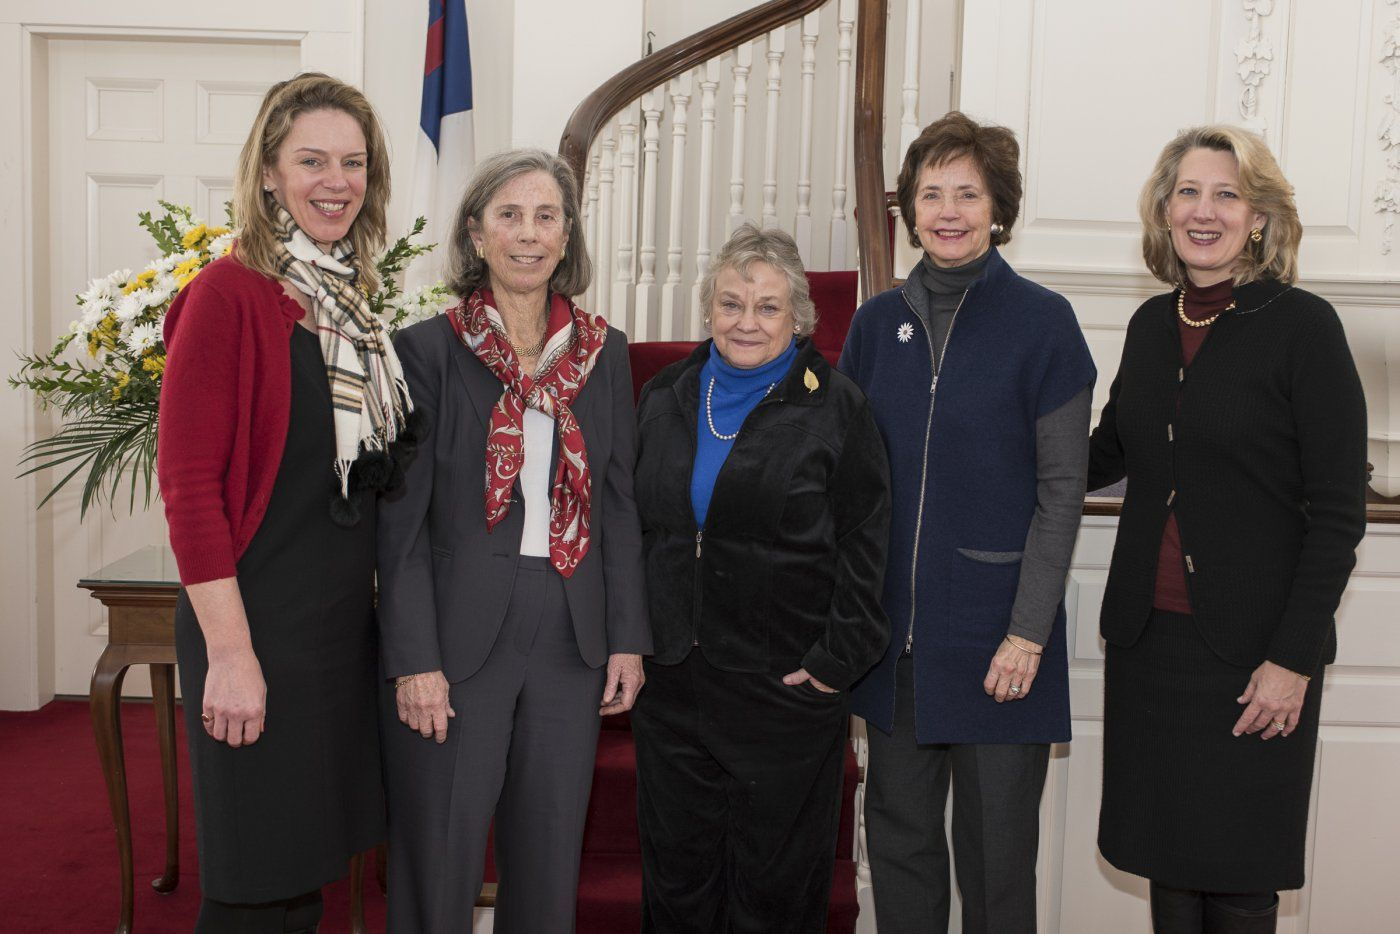 2015 Evan Burger Donaldson '51 Achievement Award Recipient, Ambassador Louise Vietor Oliver '62 pictured with Head of School Kate Windsor, Gretchen Groat Blake '62, and Trustees, Mimi Colgate Kirk '57 and Fraser Bennett Beede '81.